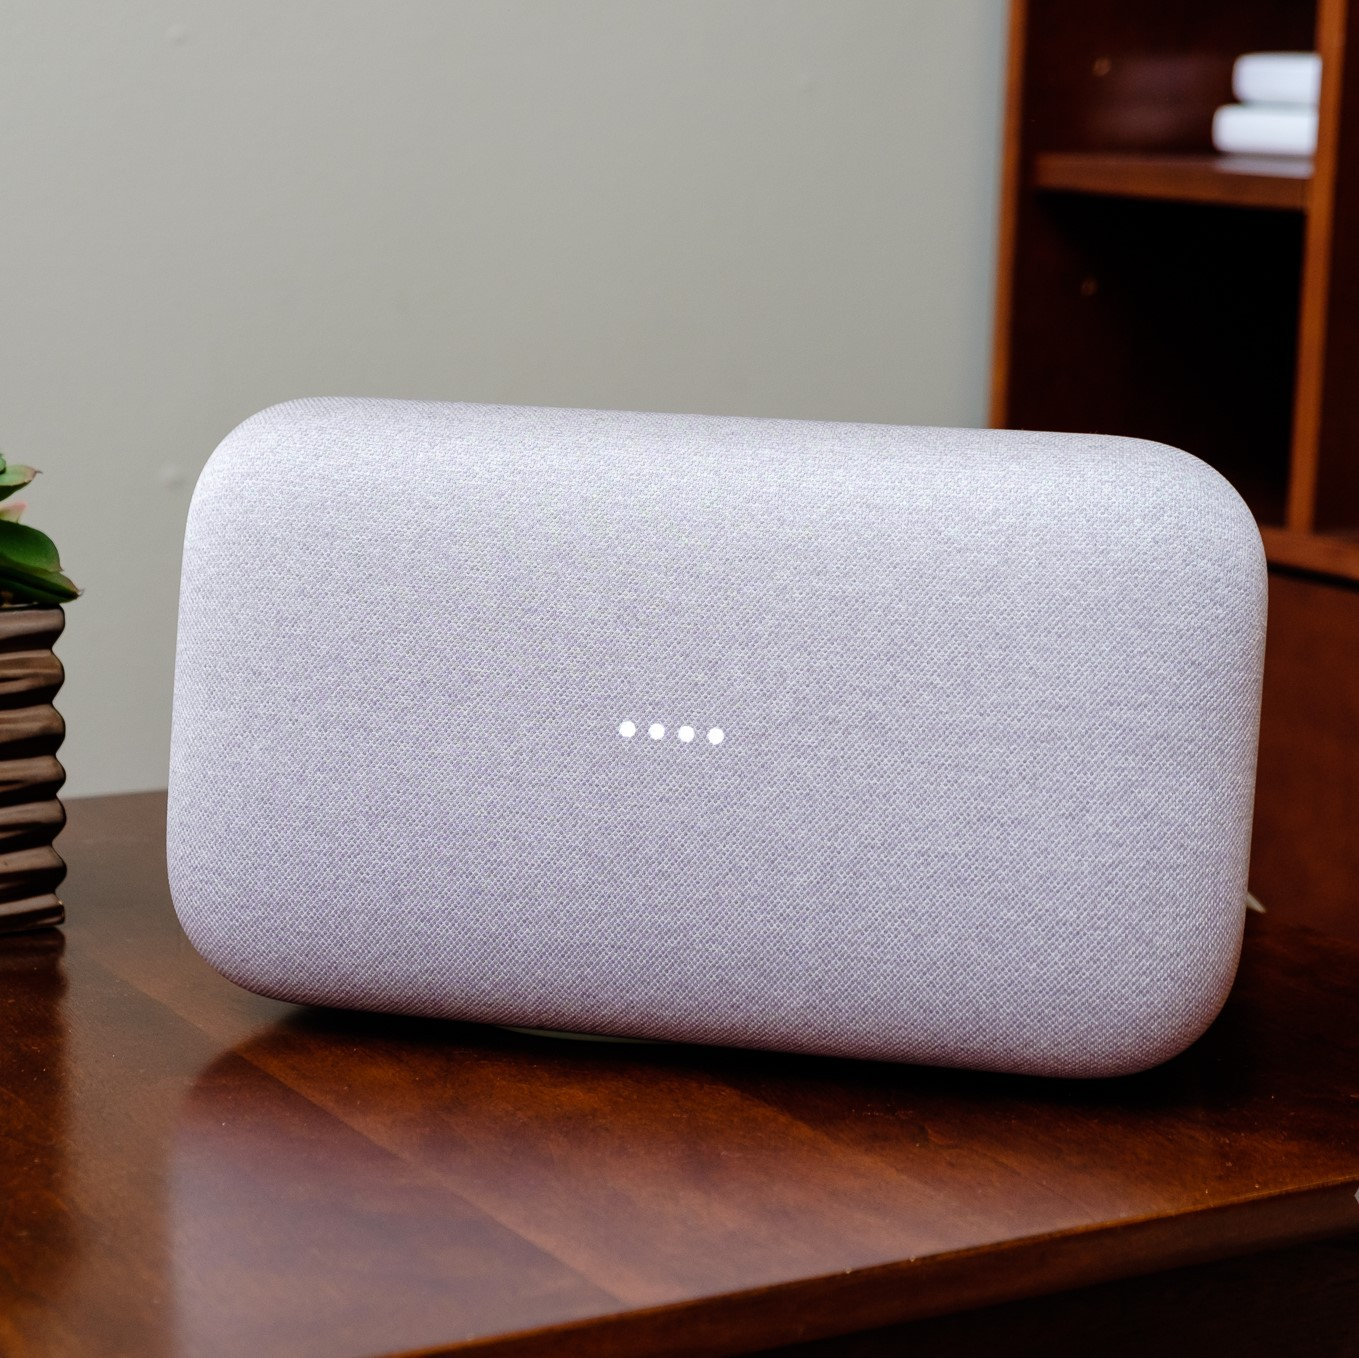 Kết quả hình ảnh cho Google Home Max review: The best (and most expensive) smart speaker